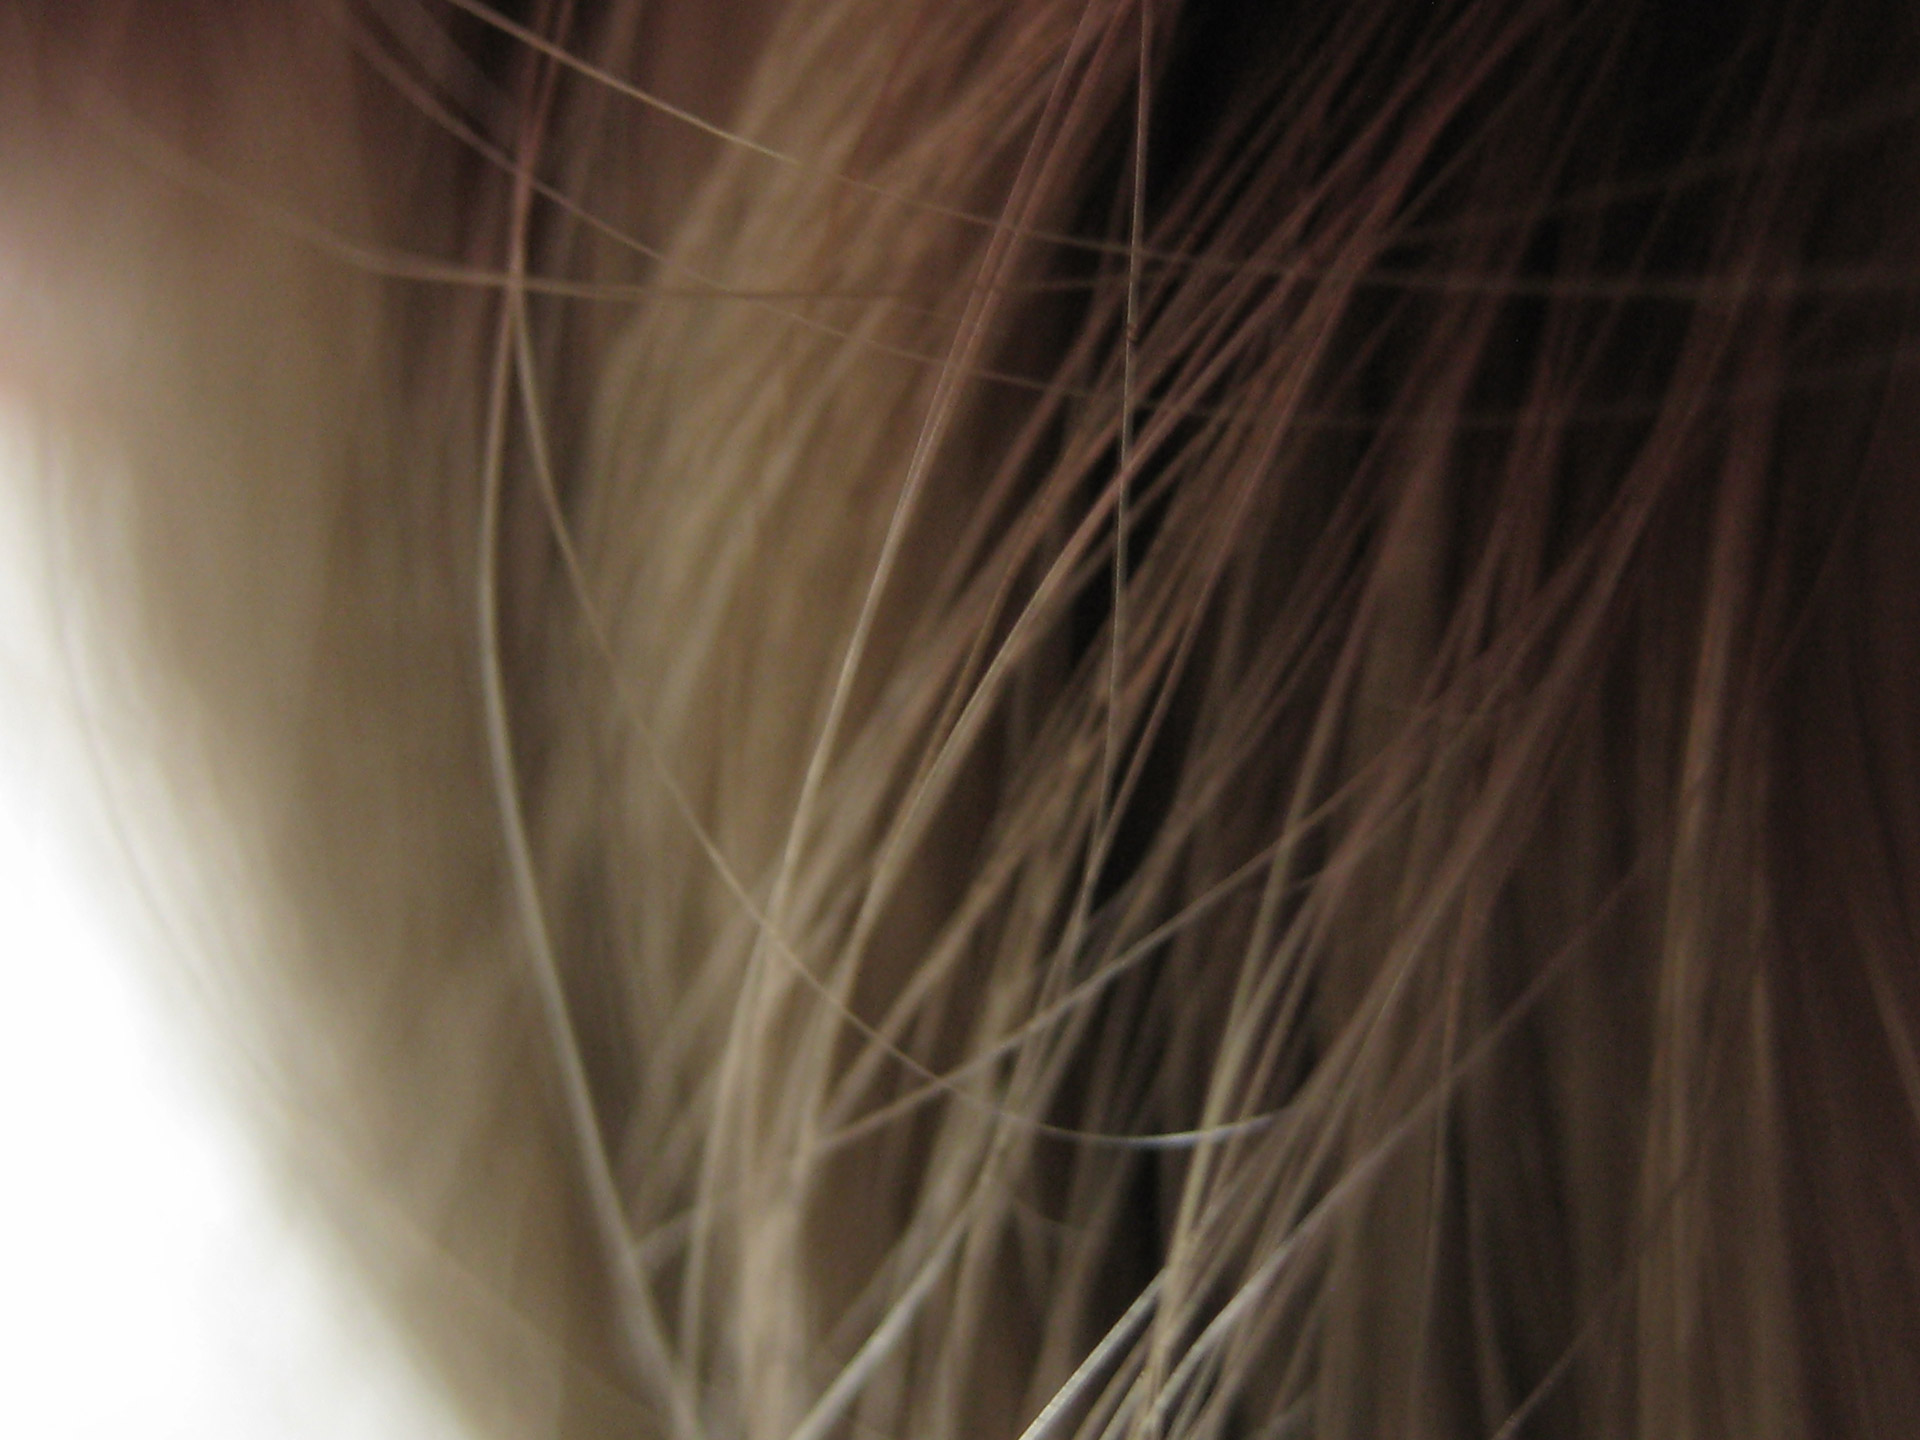 Does folic acid assists to grow your hair?